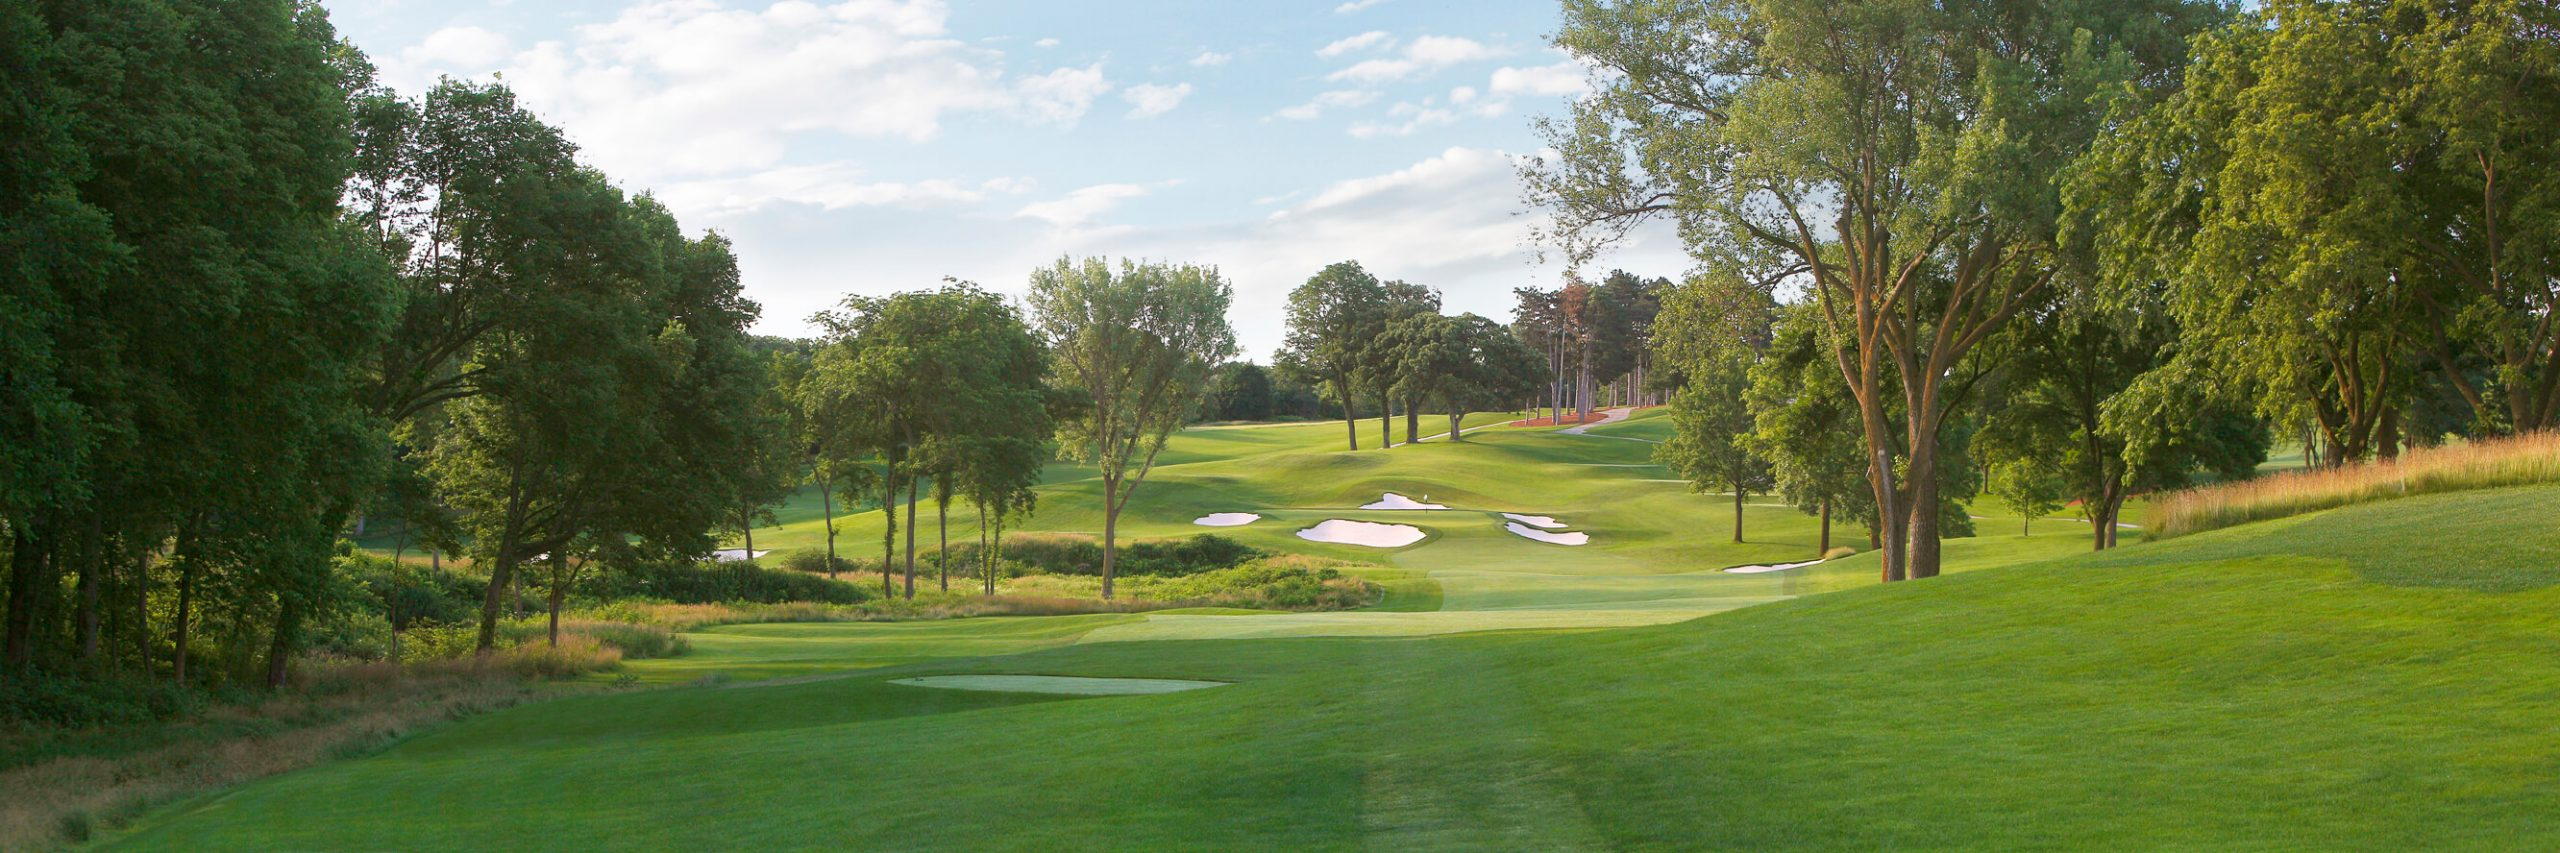 Golf Course Image - Omaha Country Club No. 16